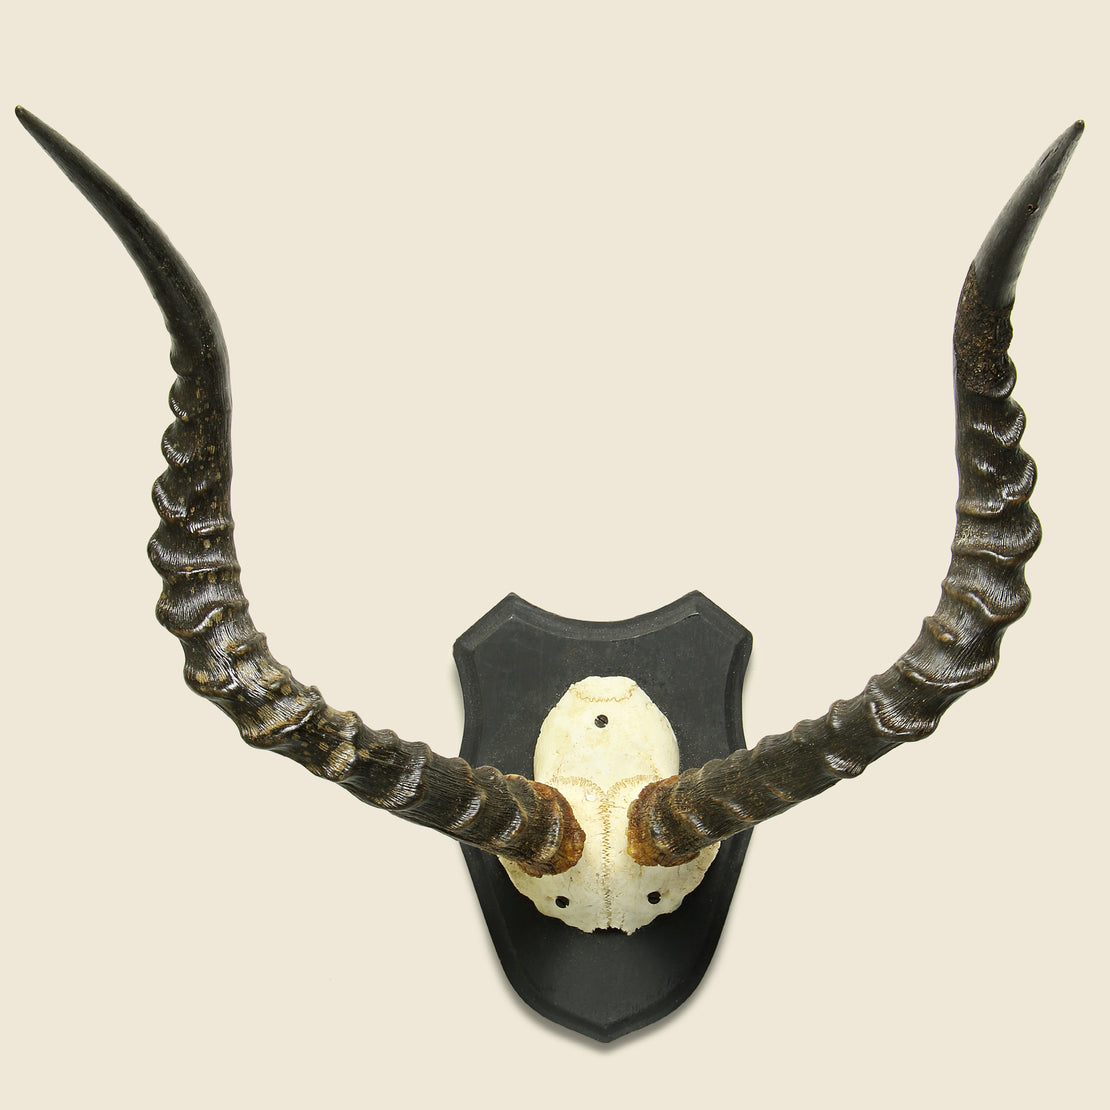 Vintage Mounted Horns - Addax